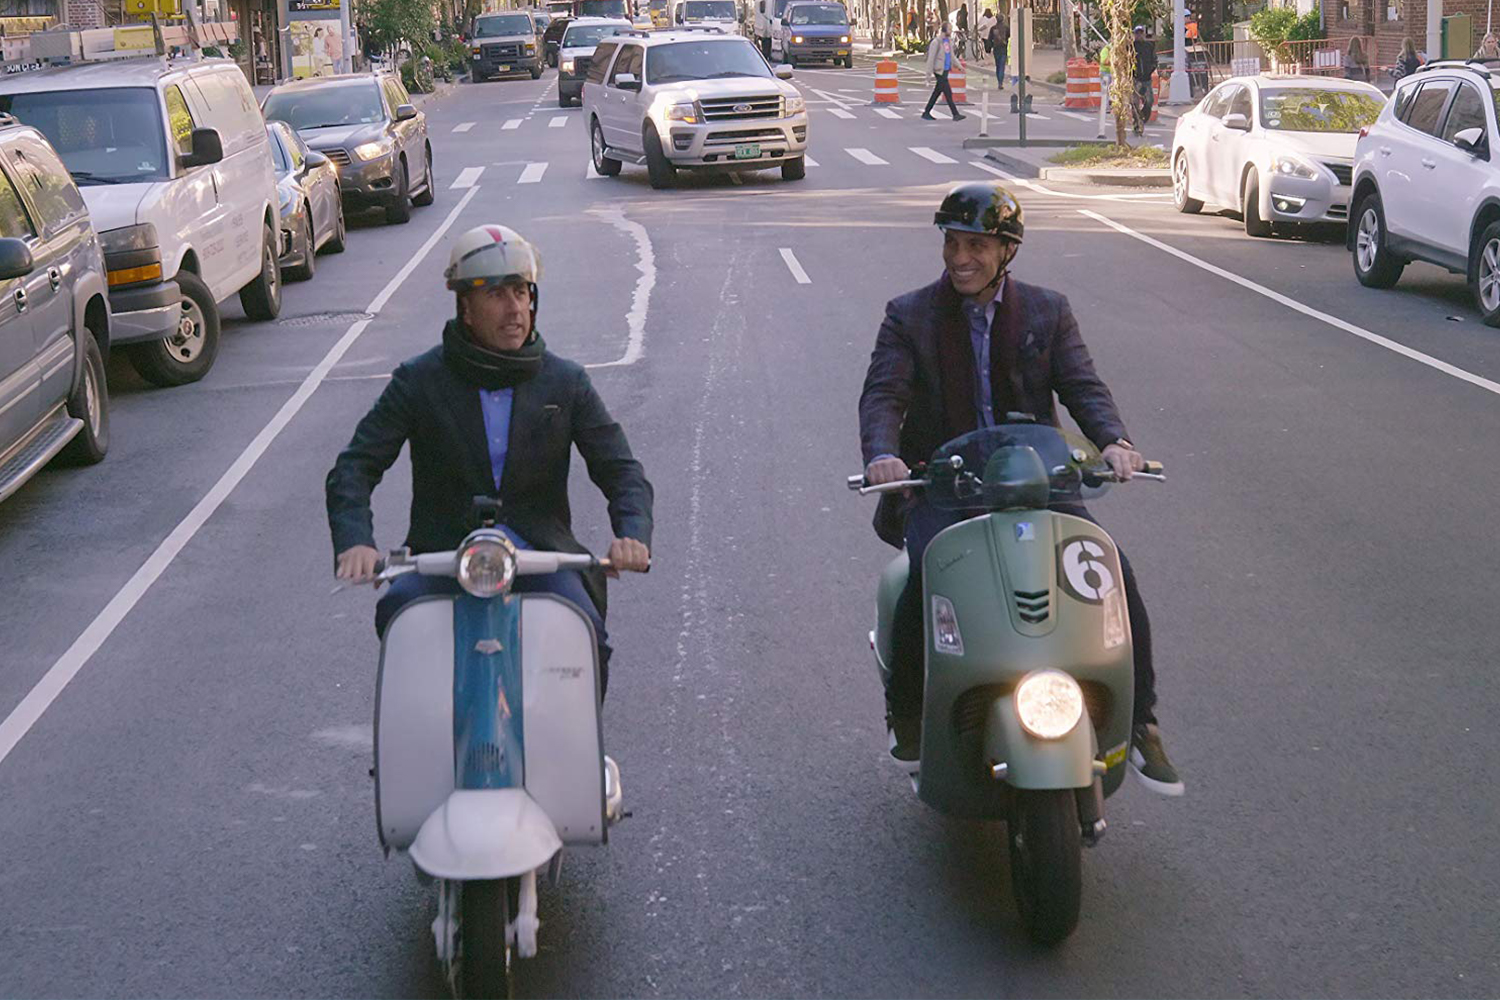 Comedians in Cars Getting Coffee Italian Scooters Lambretta Vespa